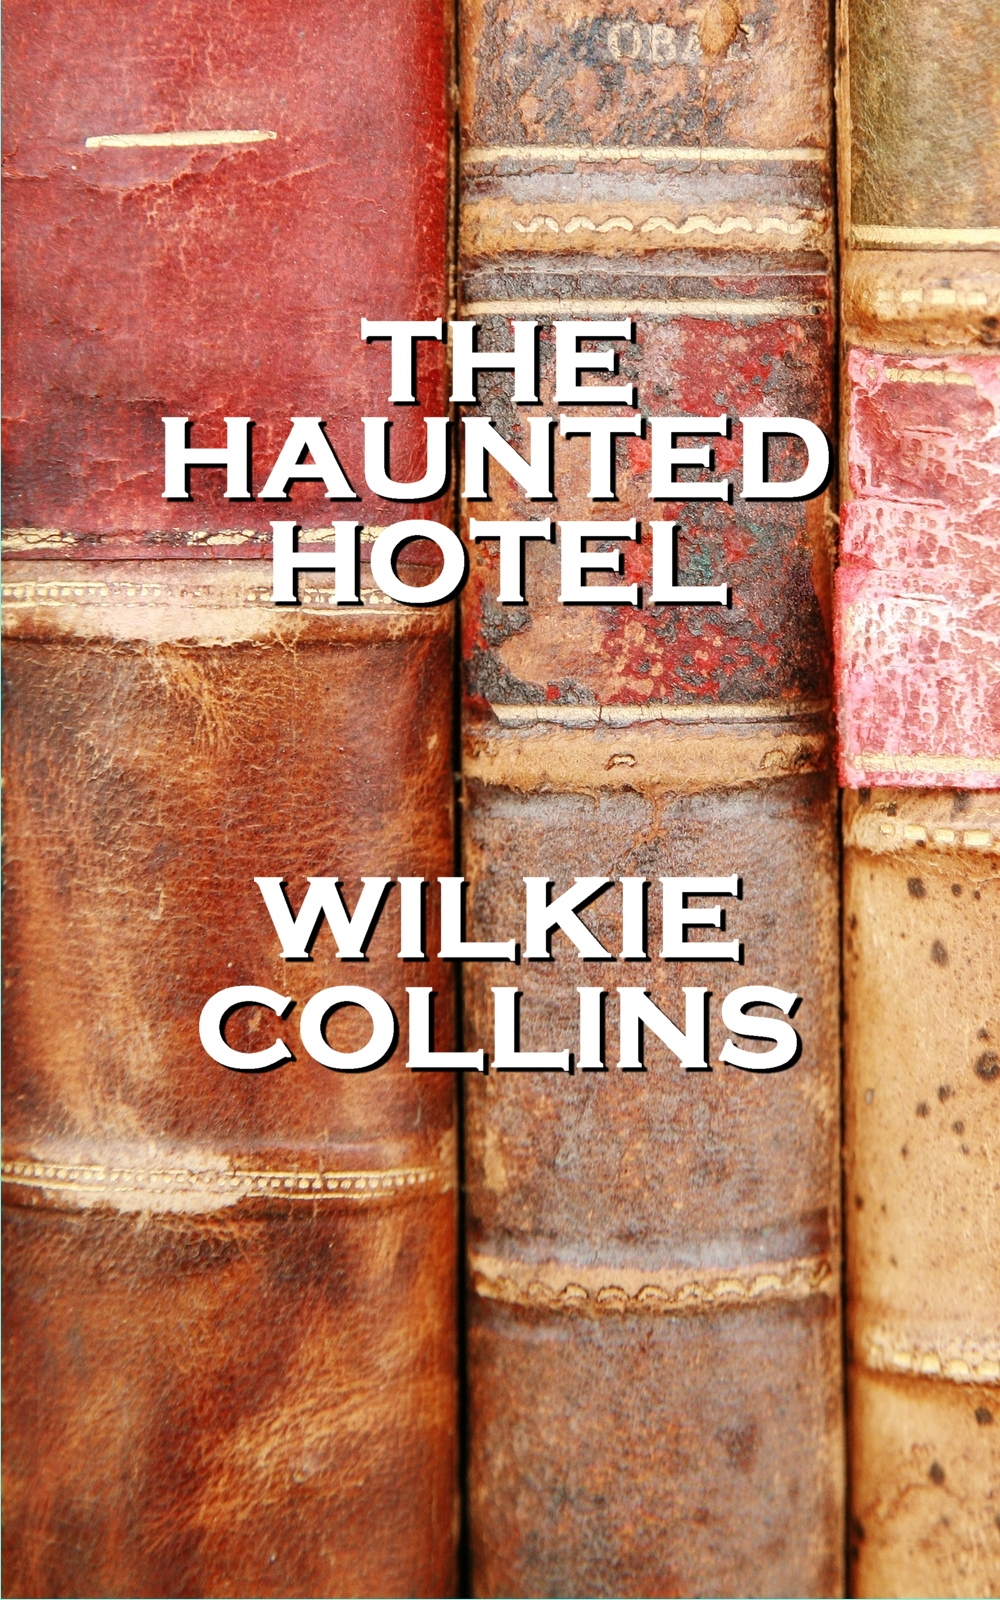 Wilkie Collins's The Haunted Hotel By: Wilkie Collins